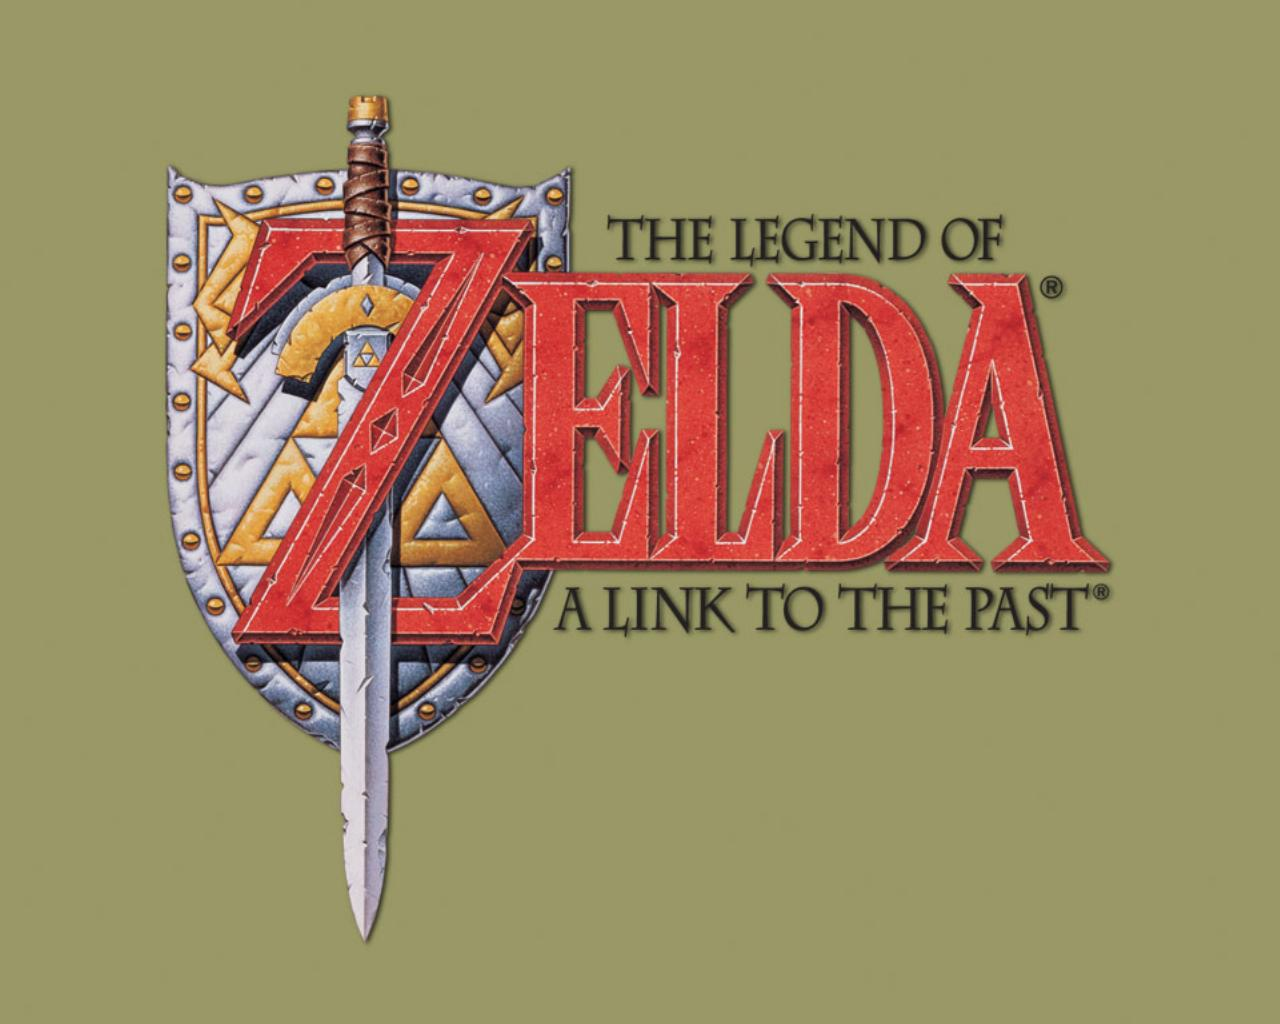 Formal Zelda Comparison: A Link to the Past Vs  A Link Between